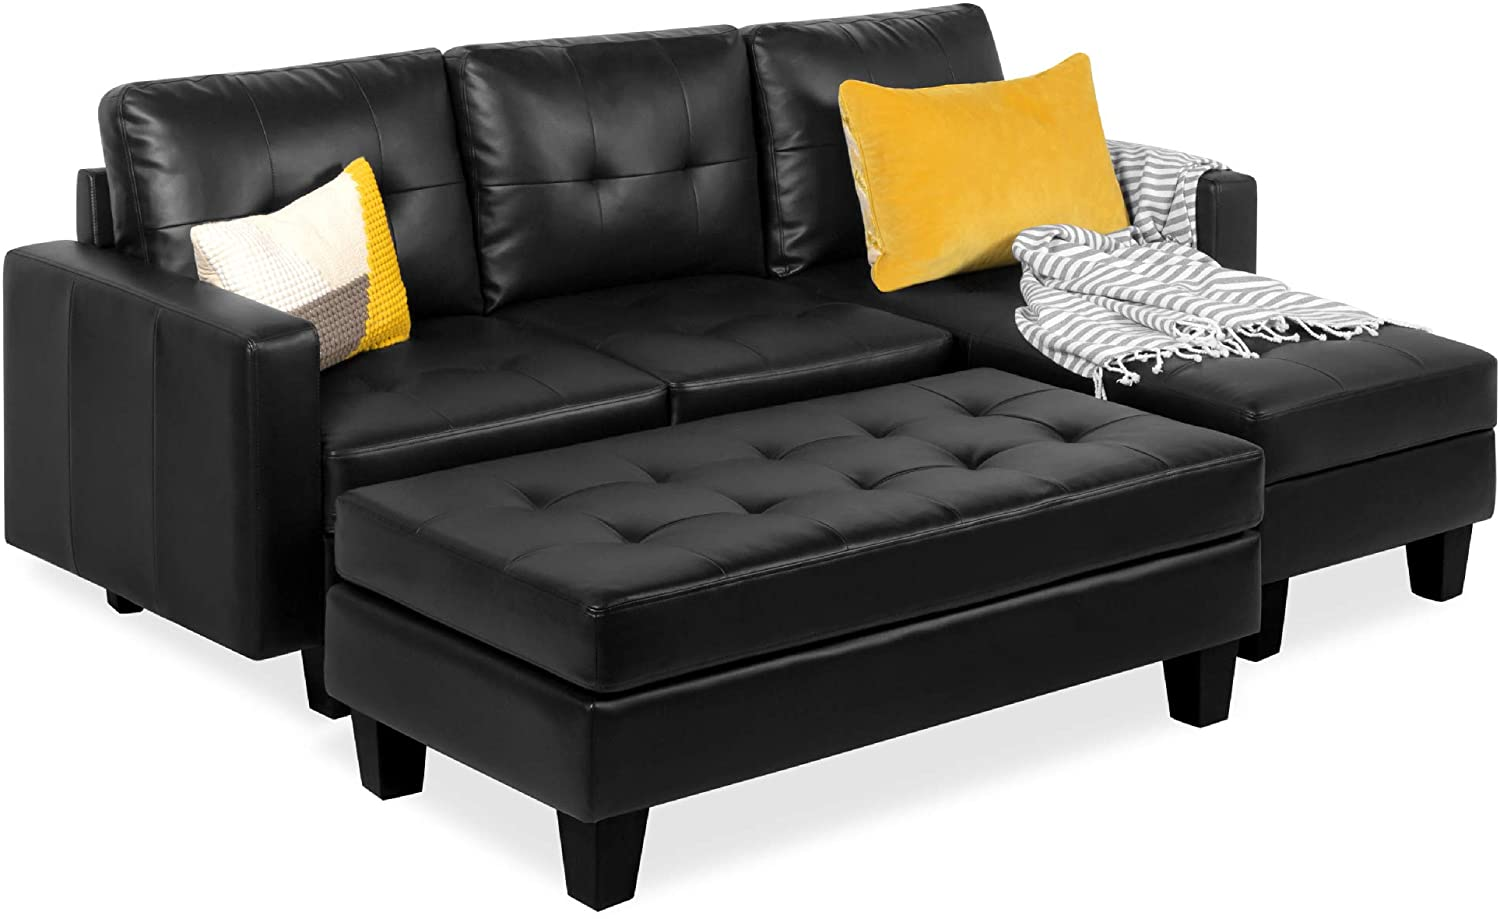 Amazon Com Best Choice Products Tufted Faux Leather 3 Seat L Shape Sectional Sofa Couch Set W Chaise Lounge Ottoman Coffee Table Bench Black Furniture Decor